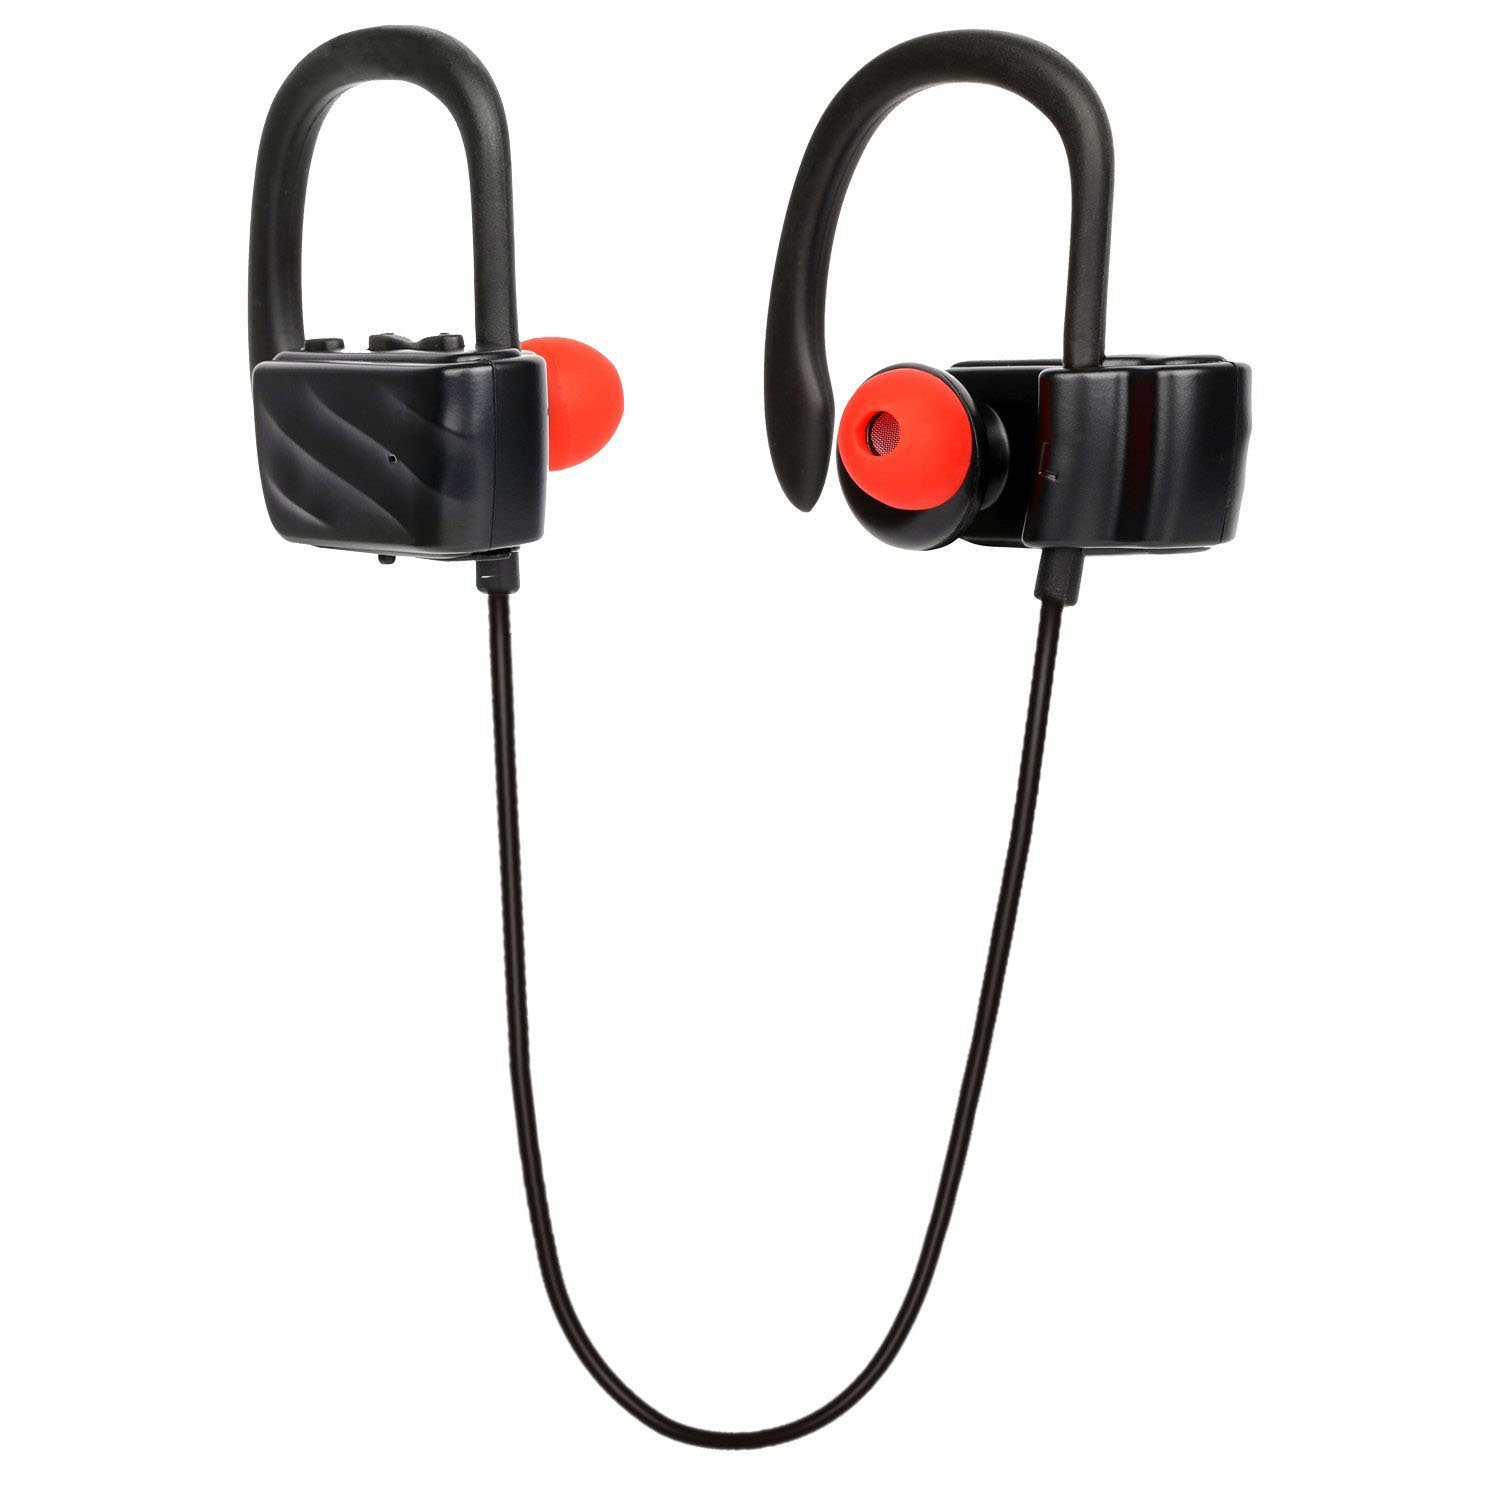 Bluetooth Earbuds, Wireless Sweatproof Sports Headphones, 4.1 Bluetooth Secure Ear Hooks Design With Noise Cancelling, 8.5 Hours Play Time - Black